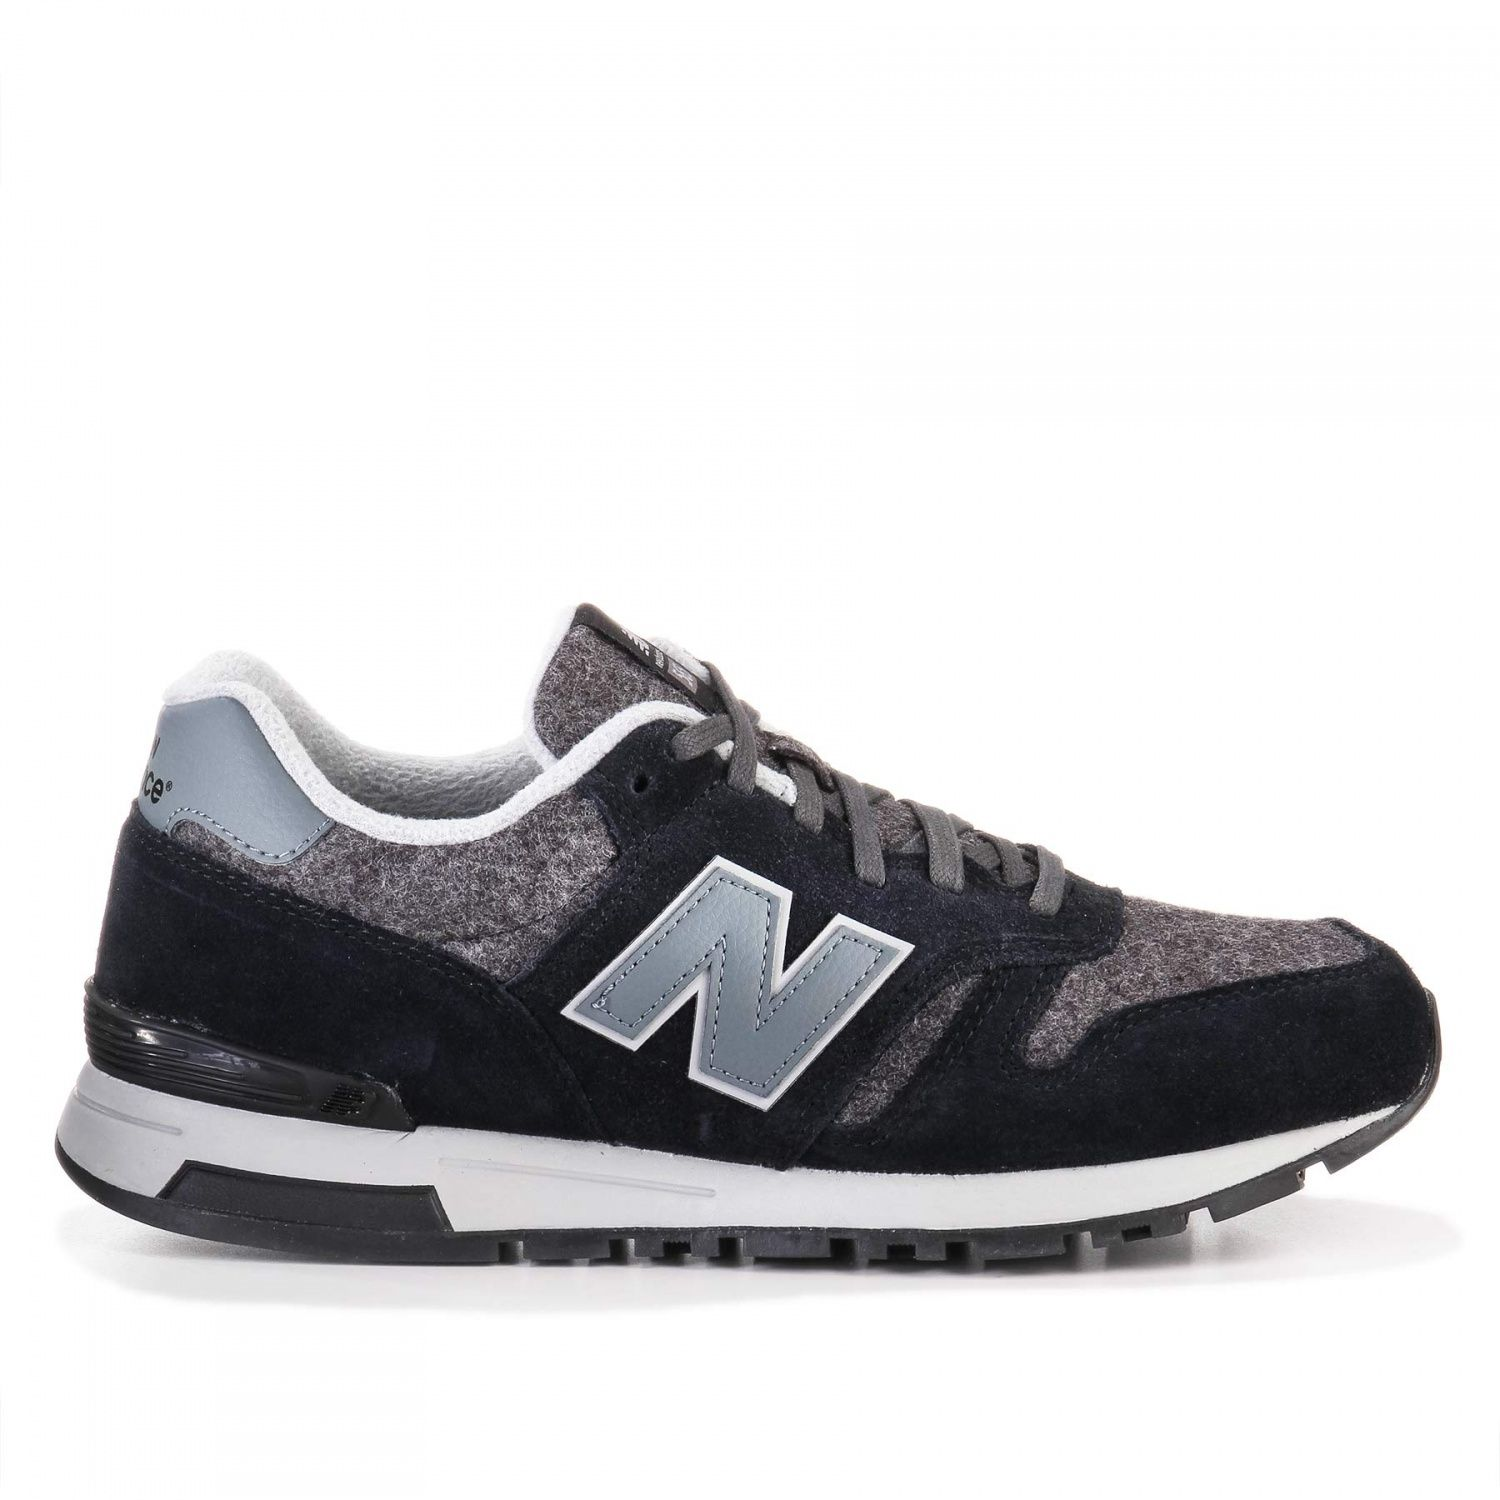 New Balance ML565 PA Winterized Pack black grey